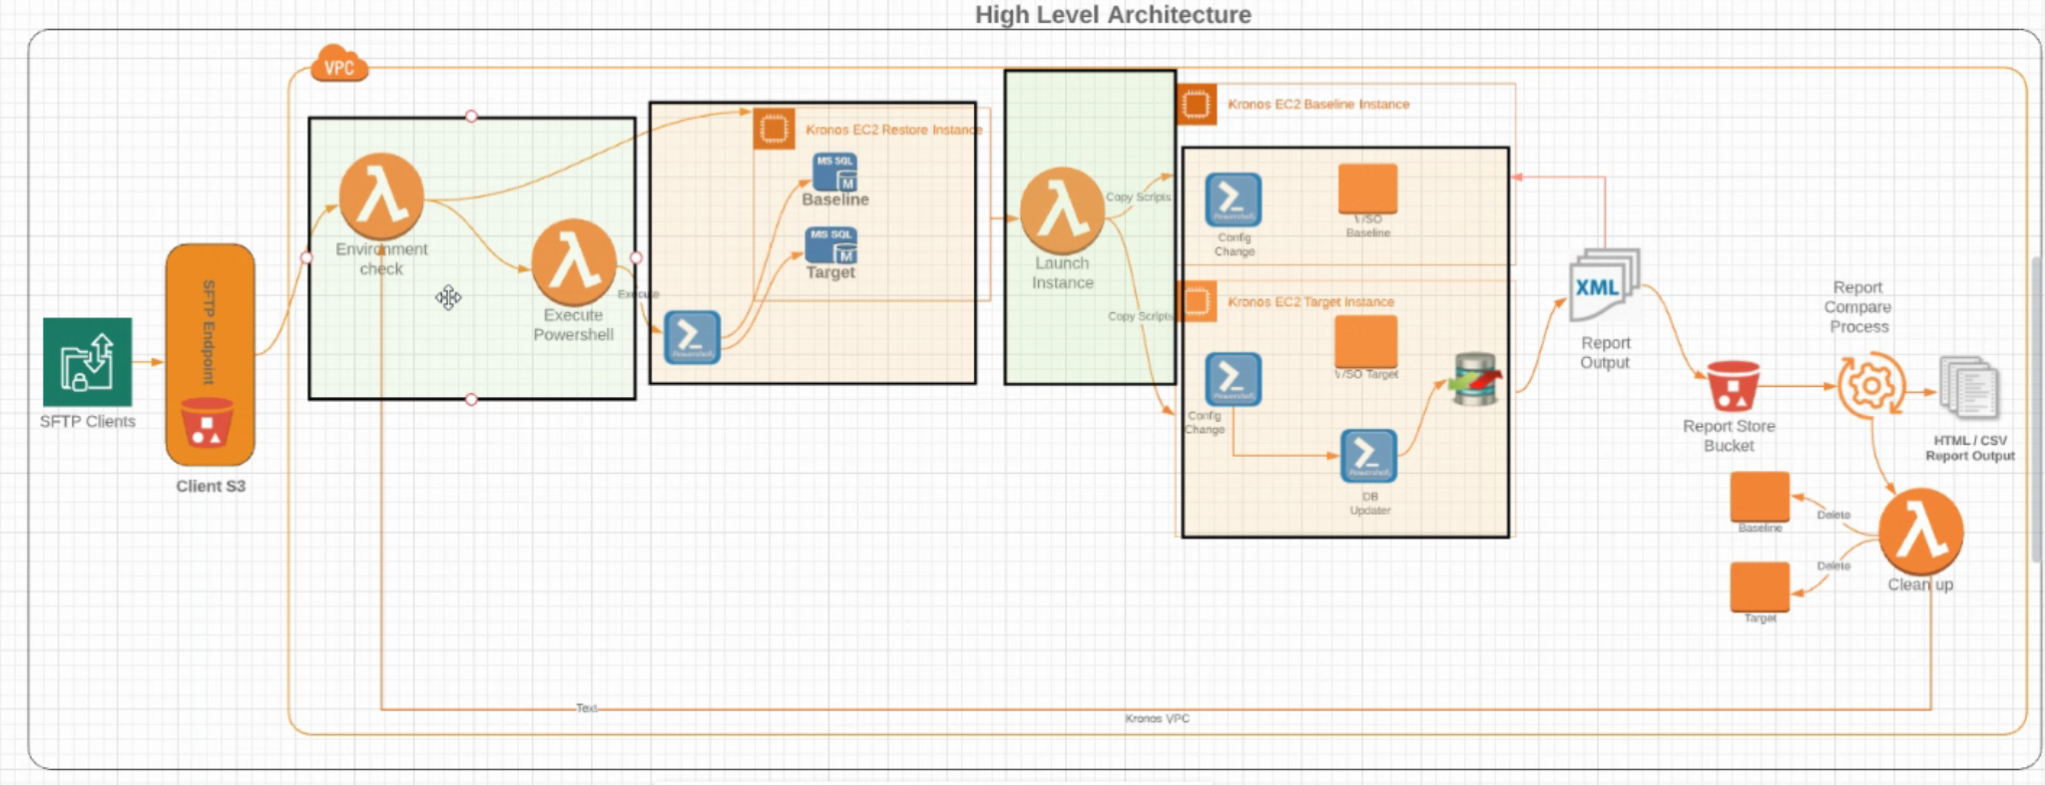 Figure 2 - Initial Orchestration Architecture